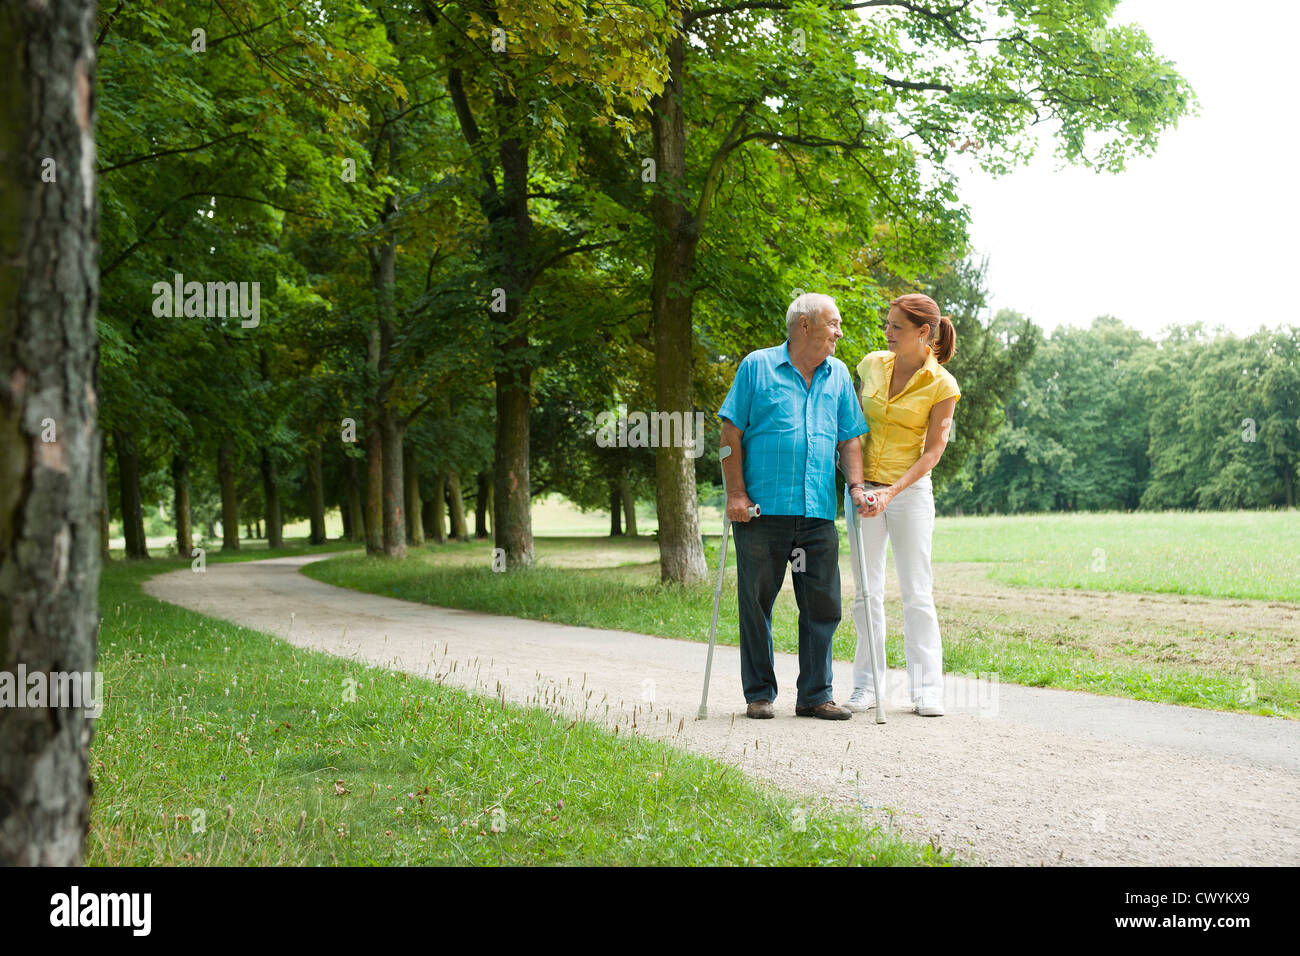 Woman walking with old man in park - Stock Image